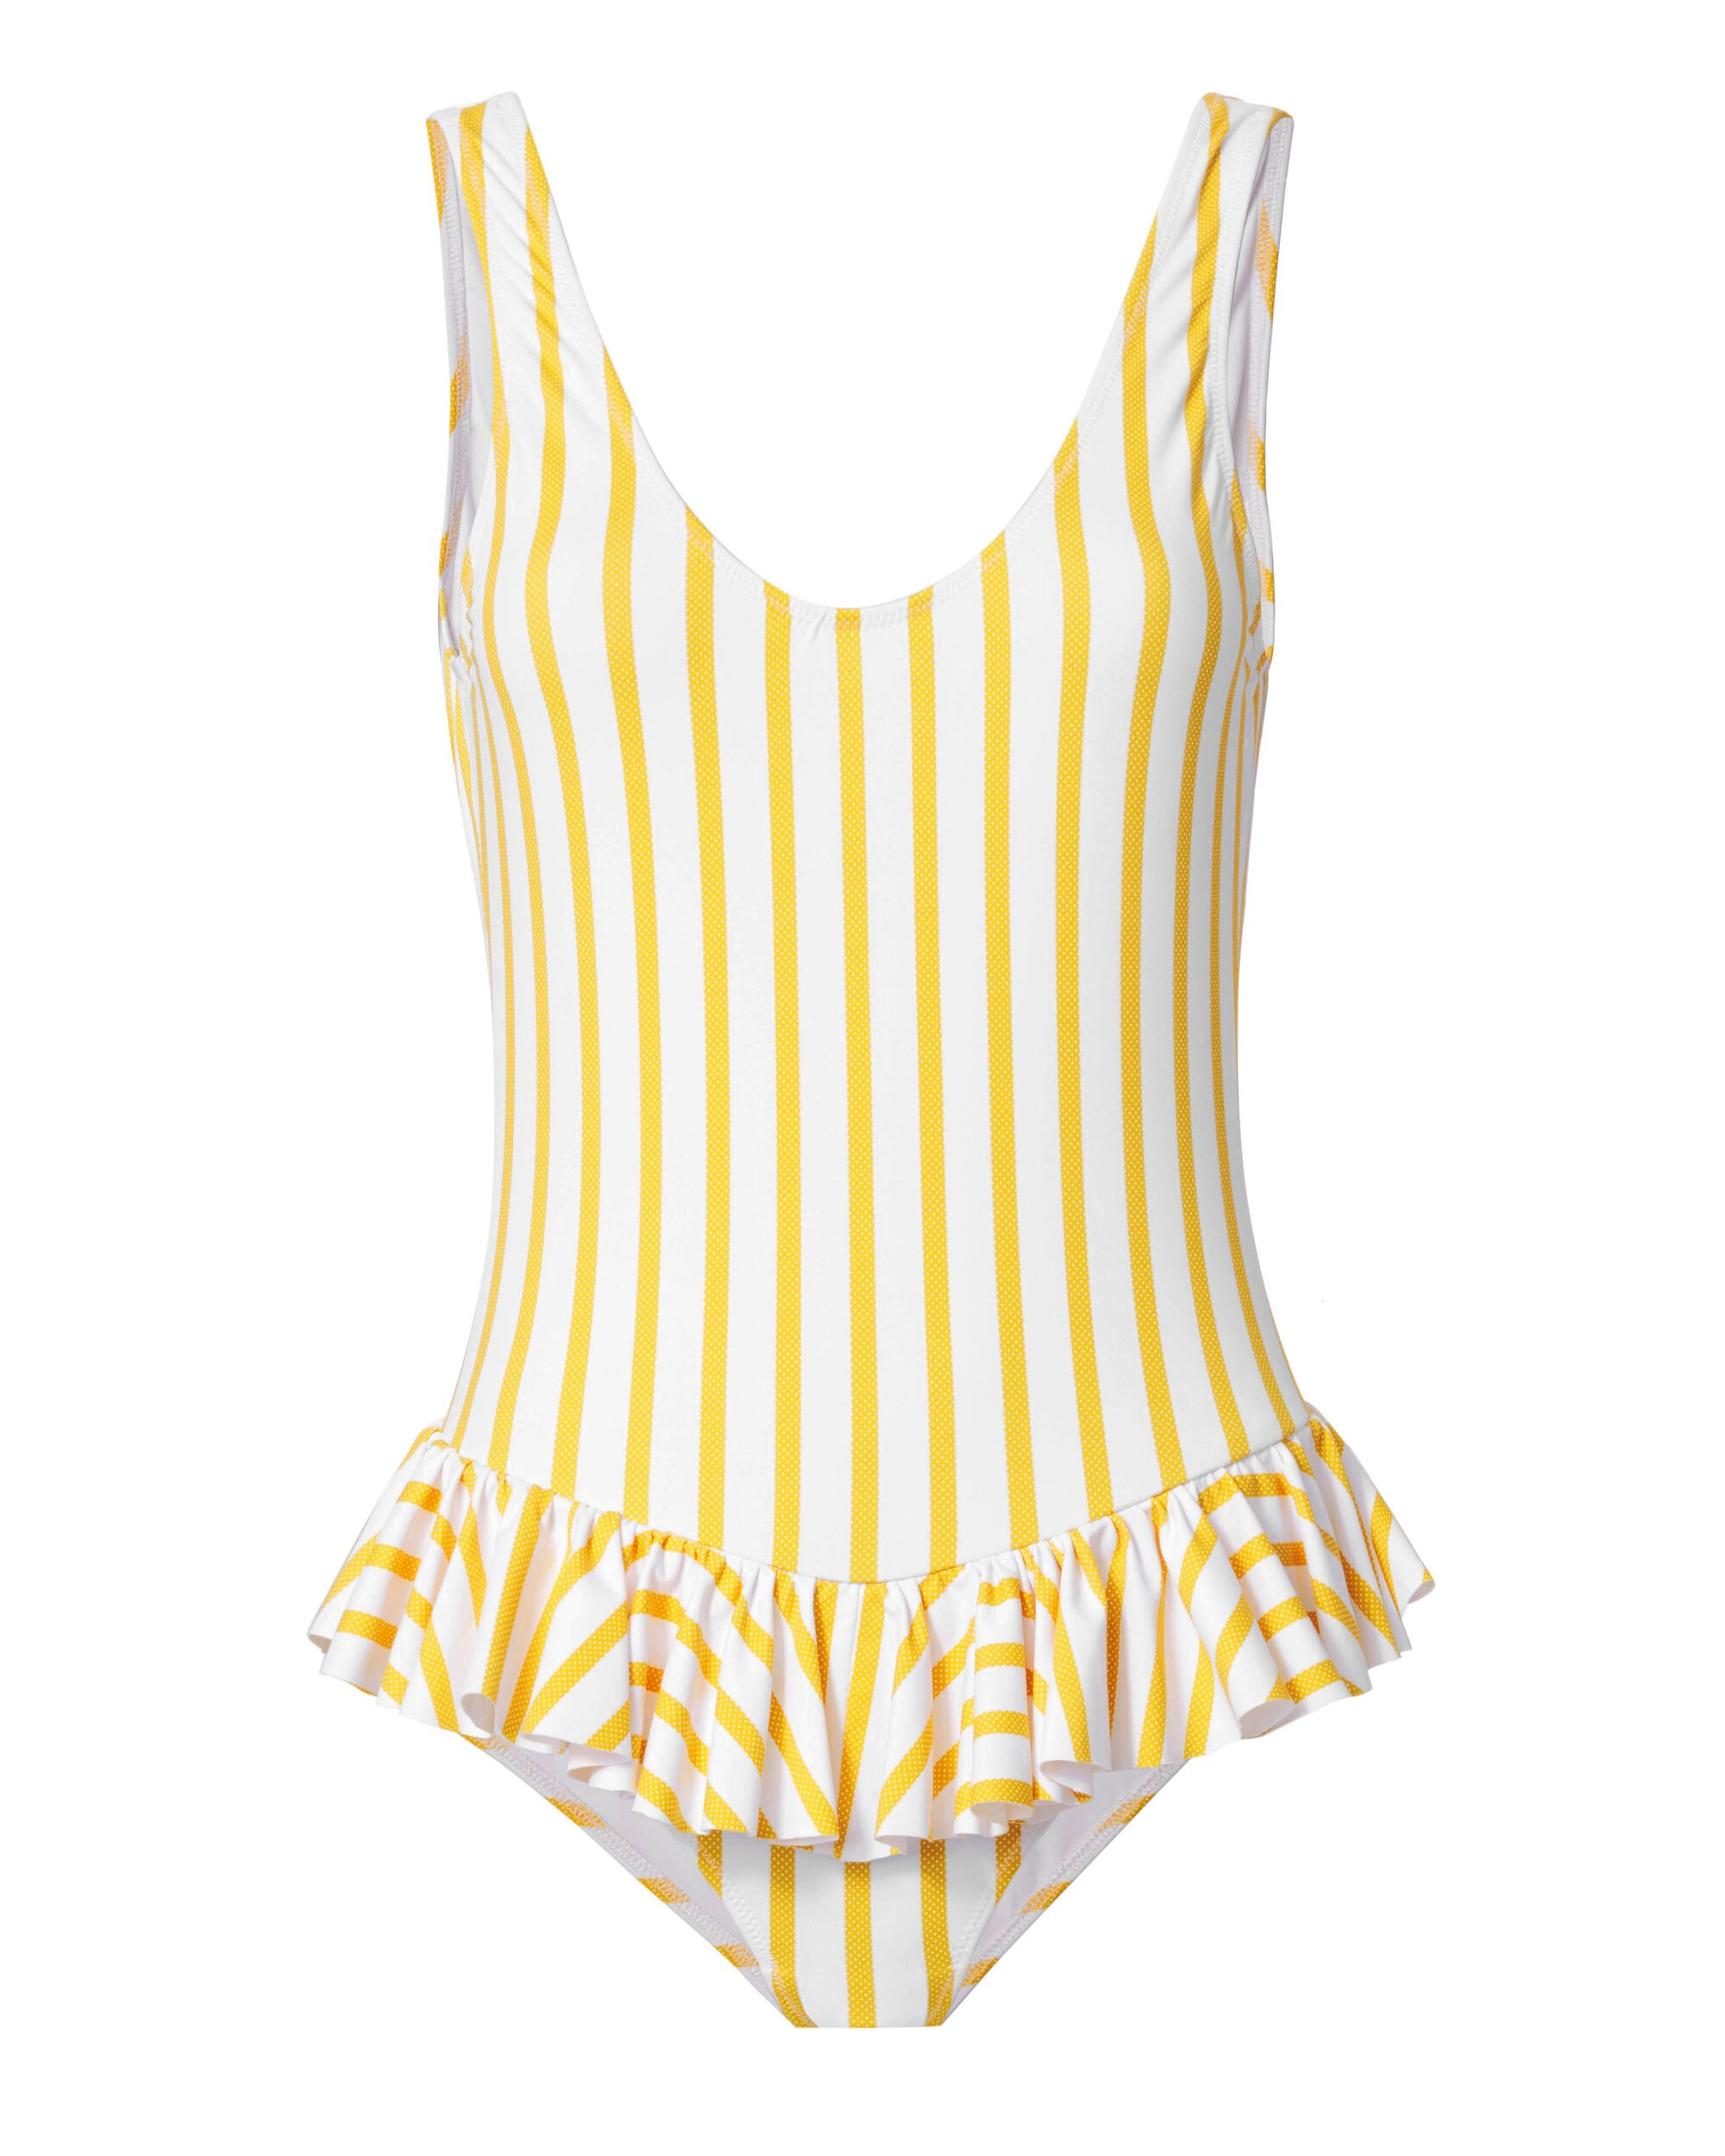 Tinos Polka Dot Striped One Piece Swimsuit, STRIPE, hi-res